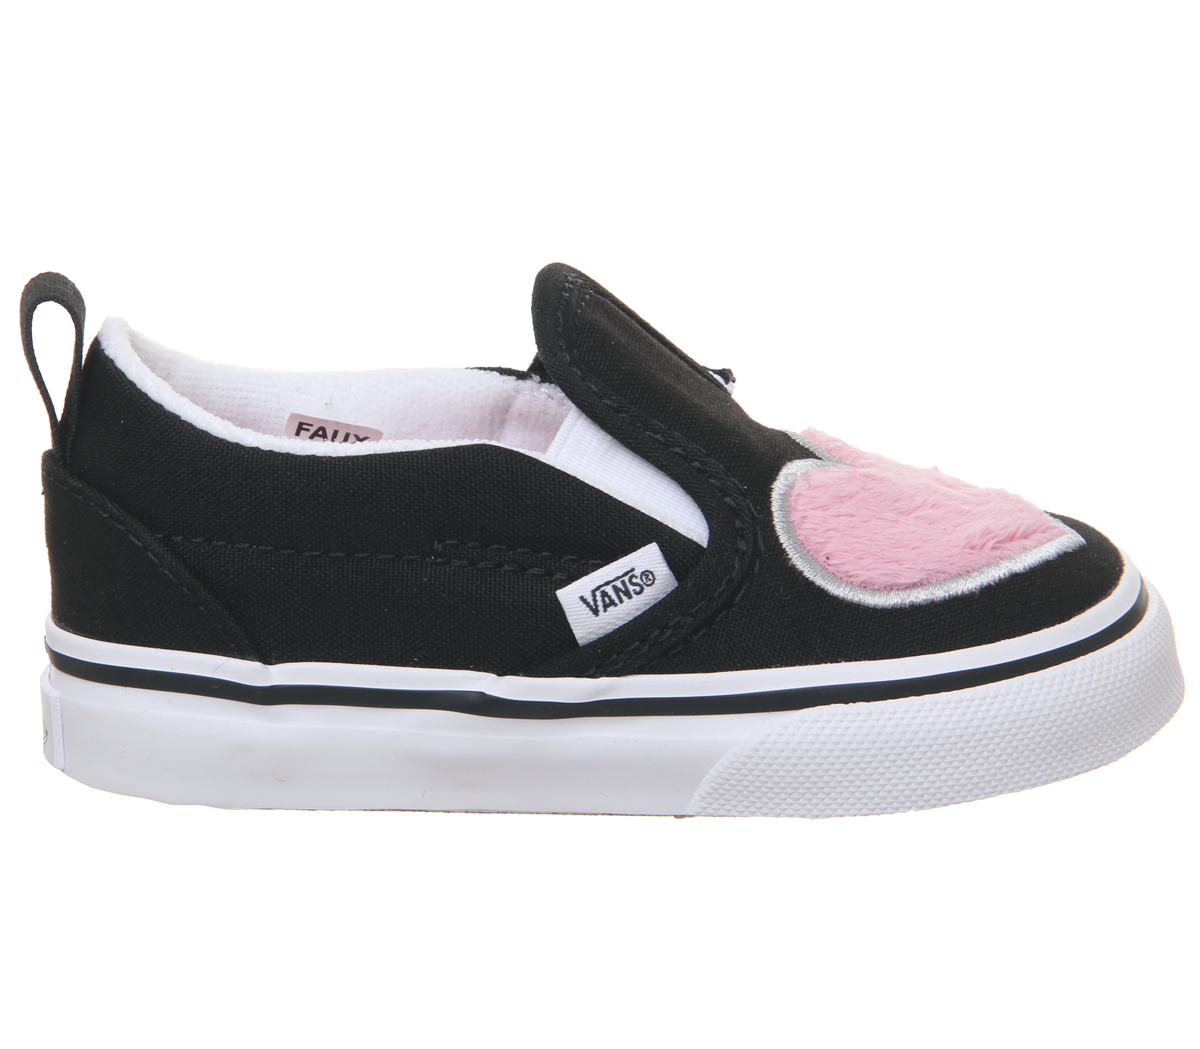 559e04230705 Kids Vans Classic Slip On Toddlers Trainers Strawberry Pink Black ...